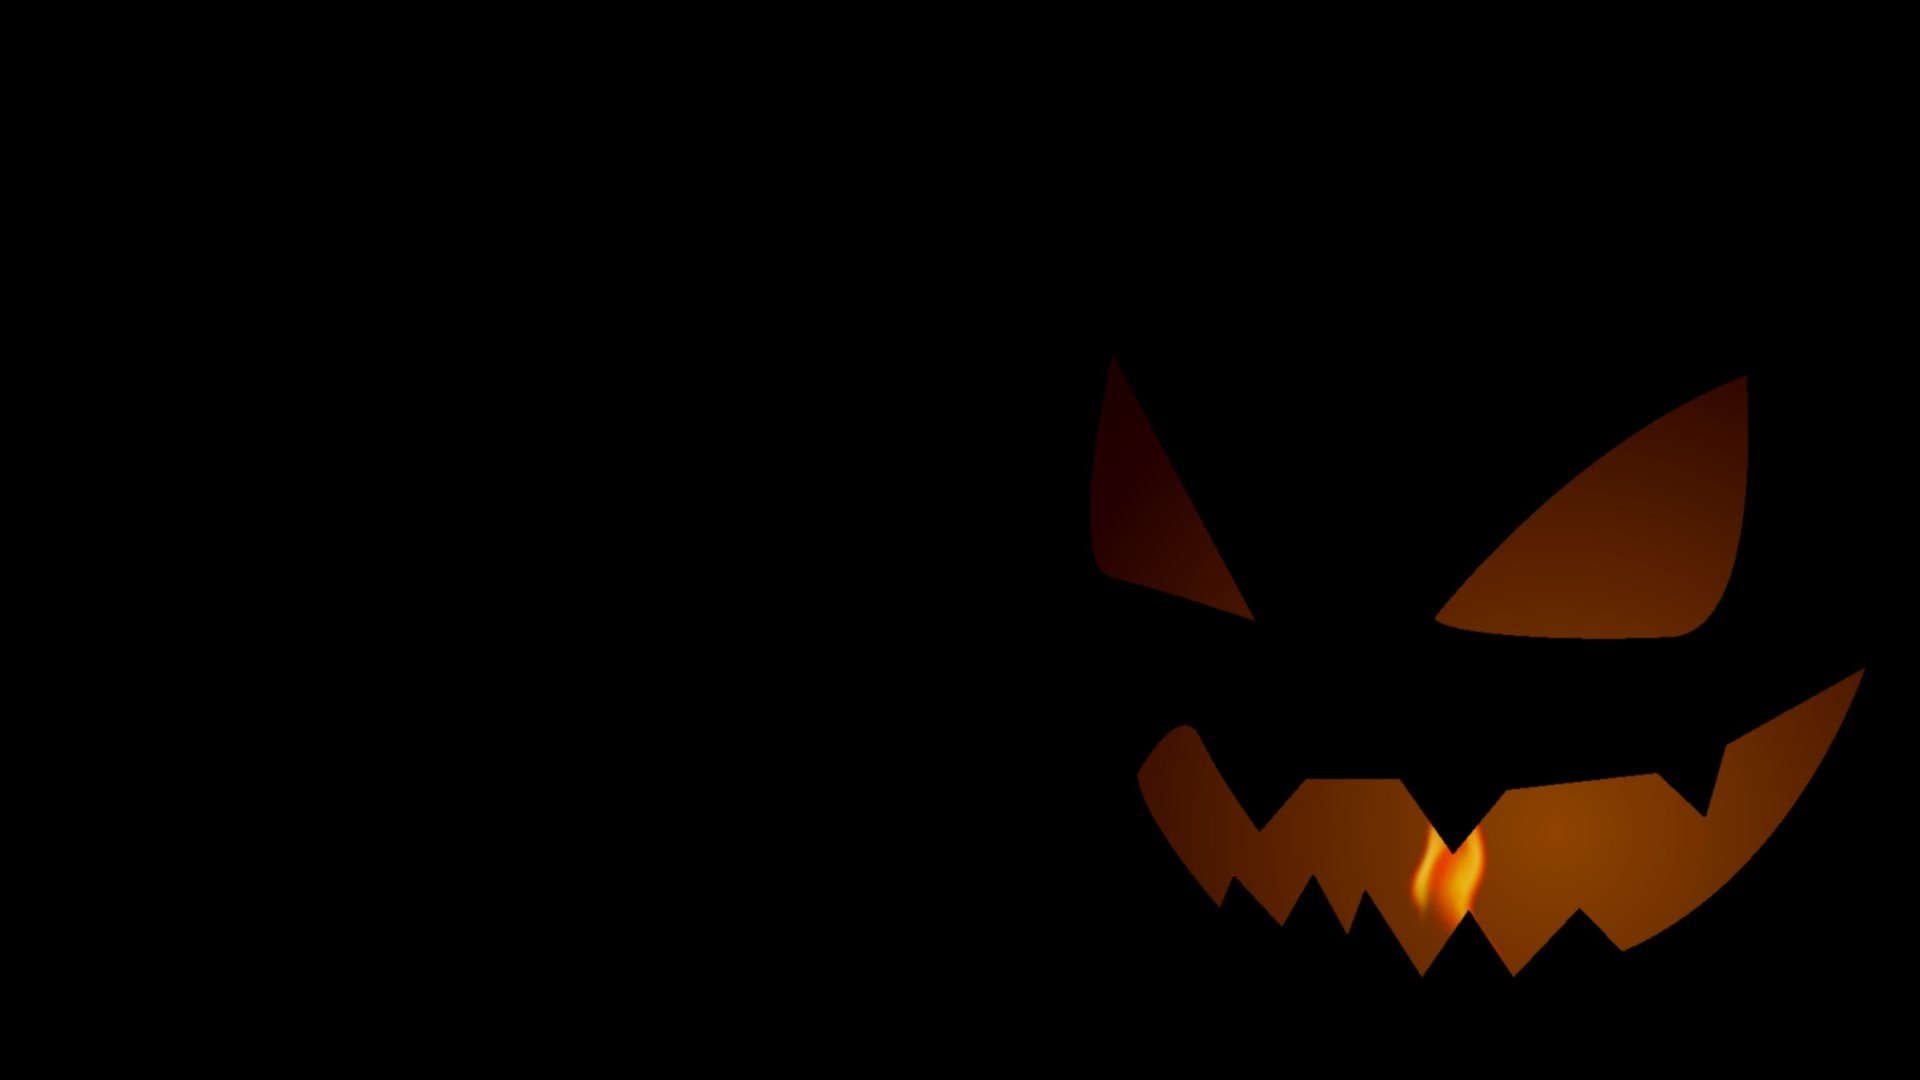 Beautiful Wallpaper Halloween Smartphone - 385935-cool-cute-halloween-backgrounds-1920x1080-smartphone  Image_882586.jpg